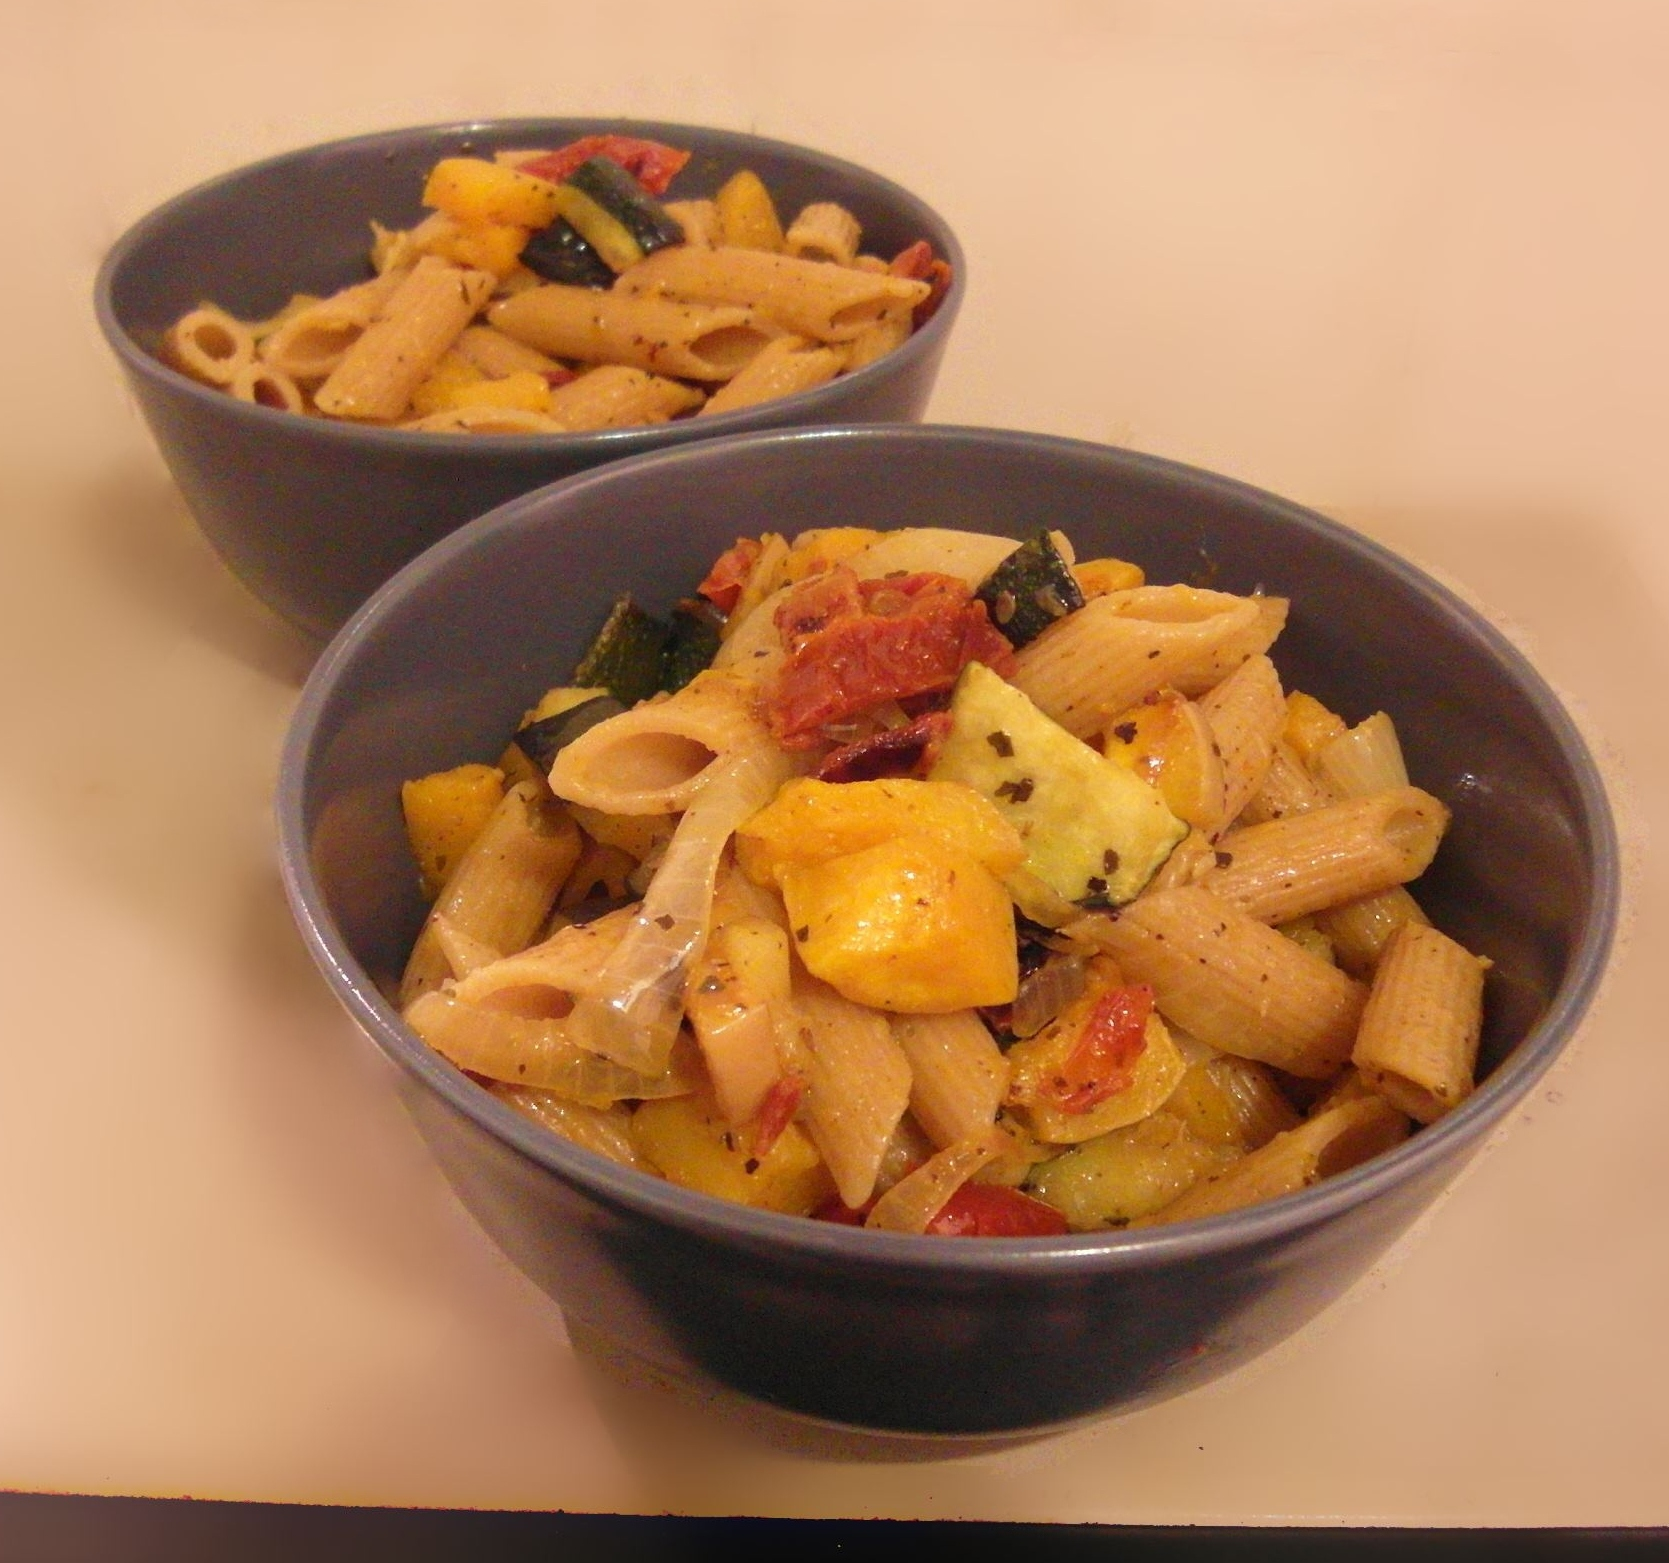 Antipasti Pasta - butternut squash and zucchini - vegan recipes by Vegan Slaughterer Yaeli Shochat